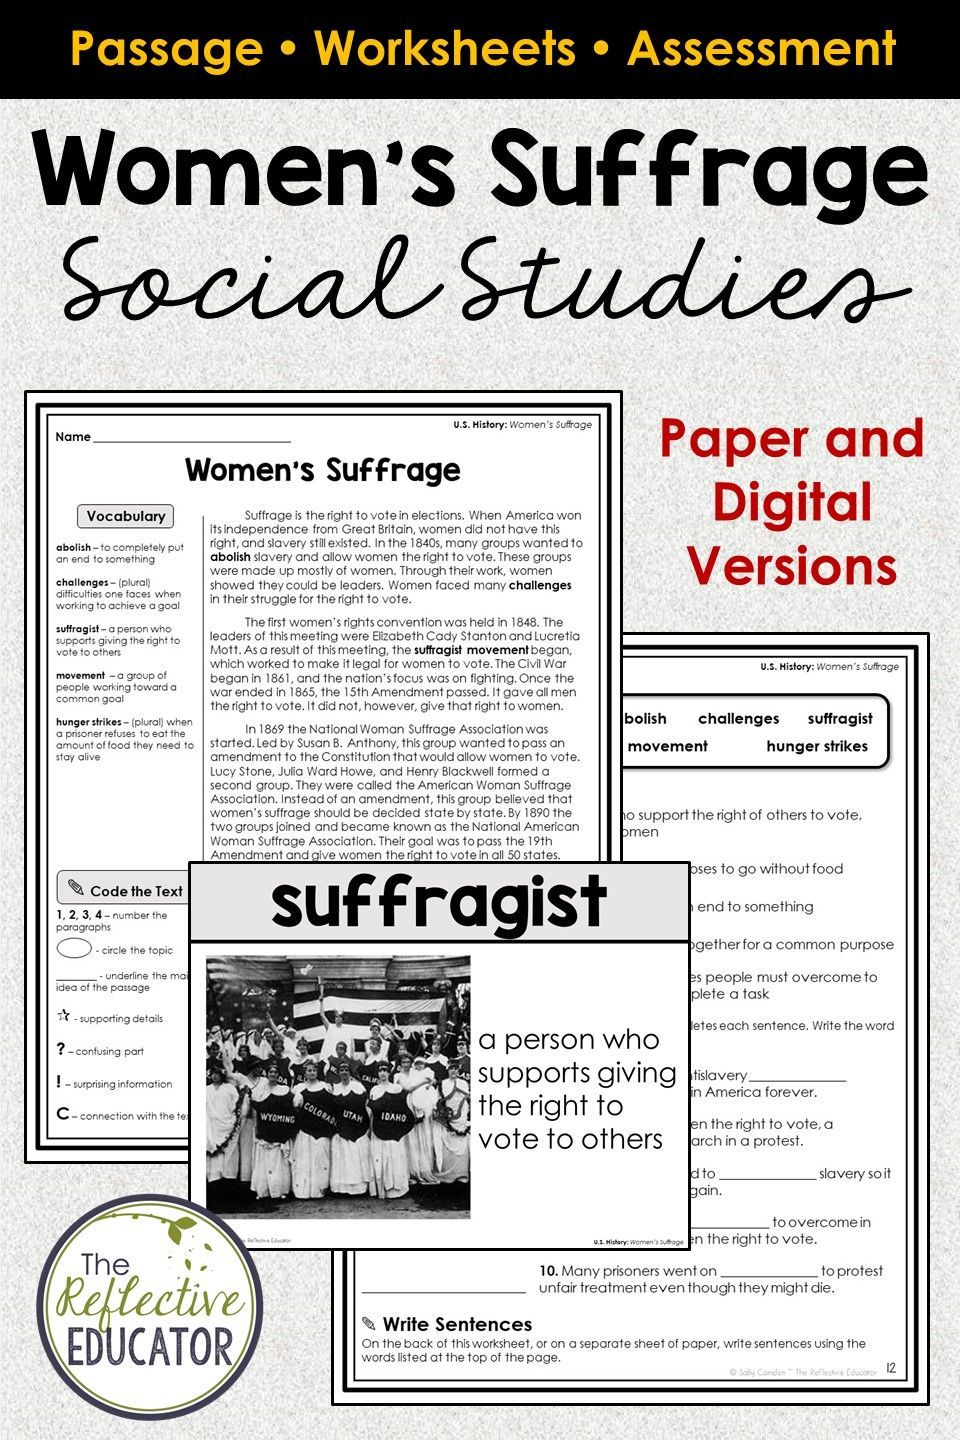 medium resolution of Women's Suffrage   Suffrage Movement   Elementary social studies lessons